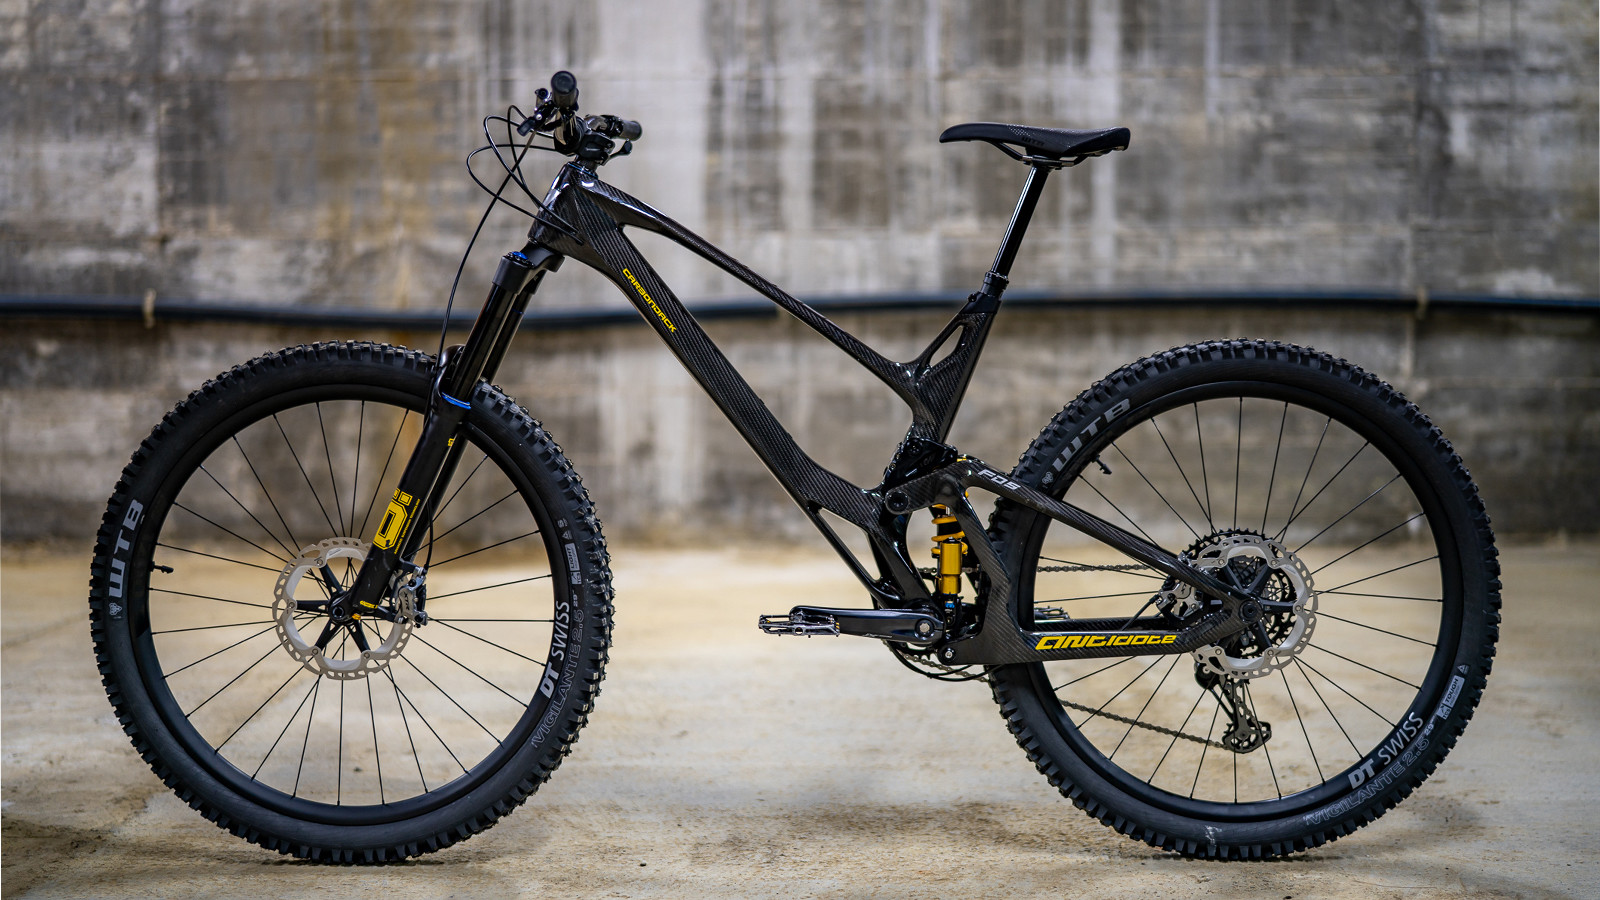 The All-New Antidote Carbonjack Enduro Bike is Here